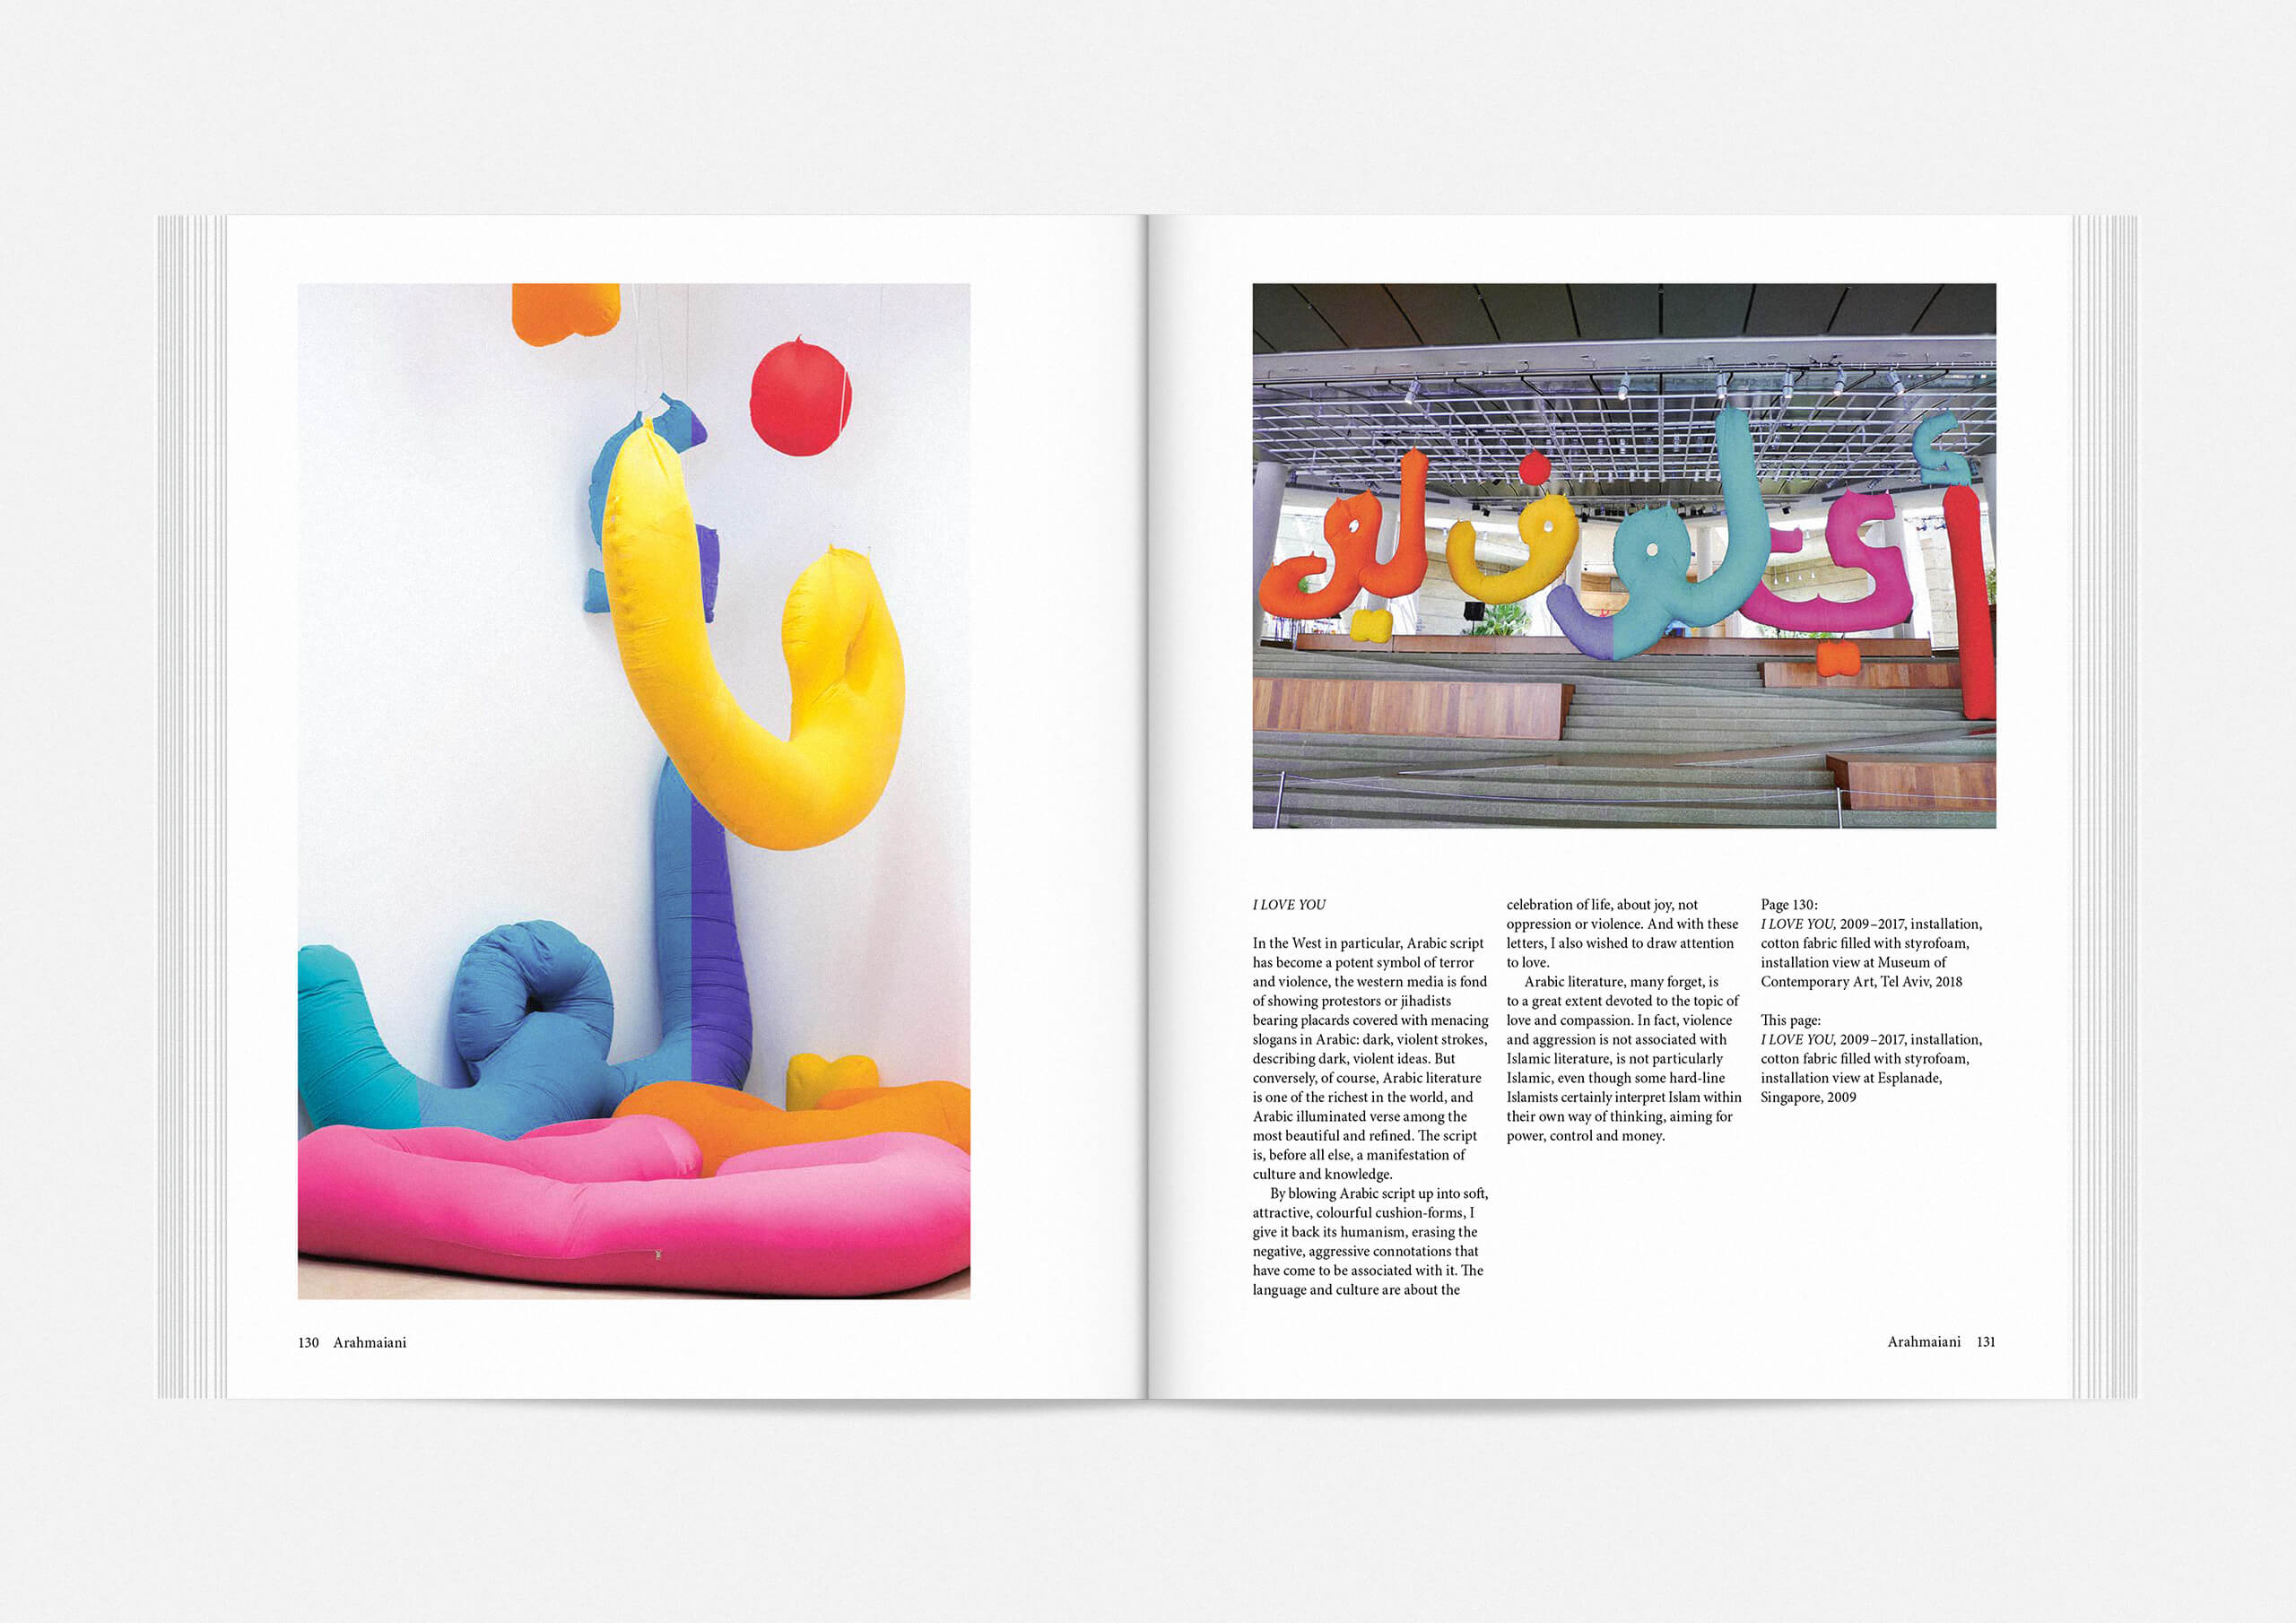 https://neuegestaltung.de/media/pages/clients/protocollum-issue-no-05/a1c3120394-1597415140/protocollum-5-page-130131-ng.jpg